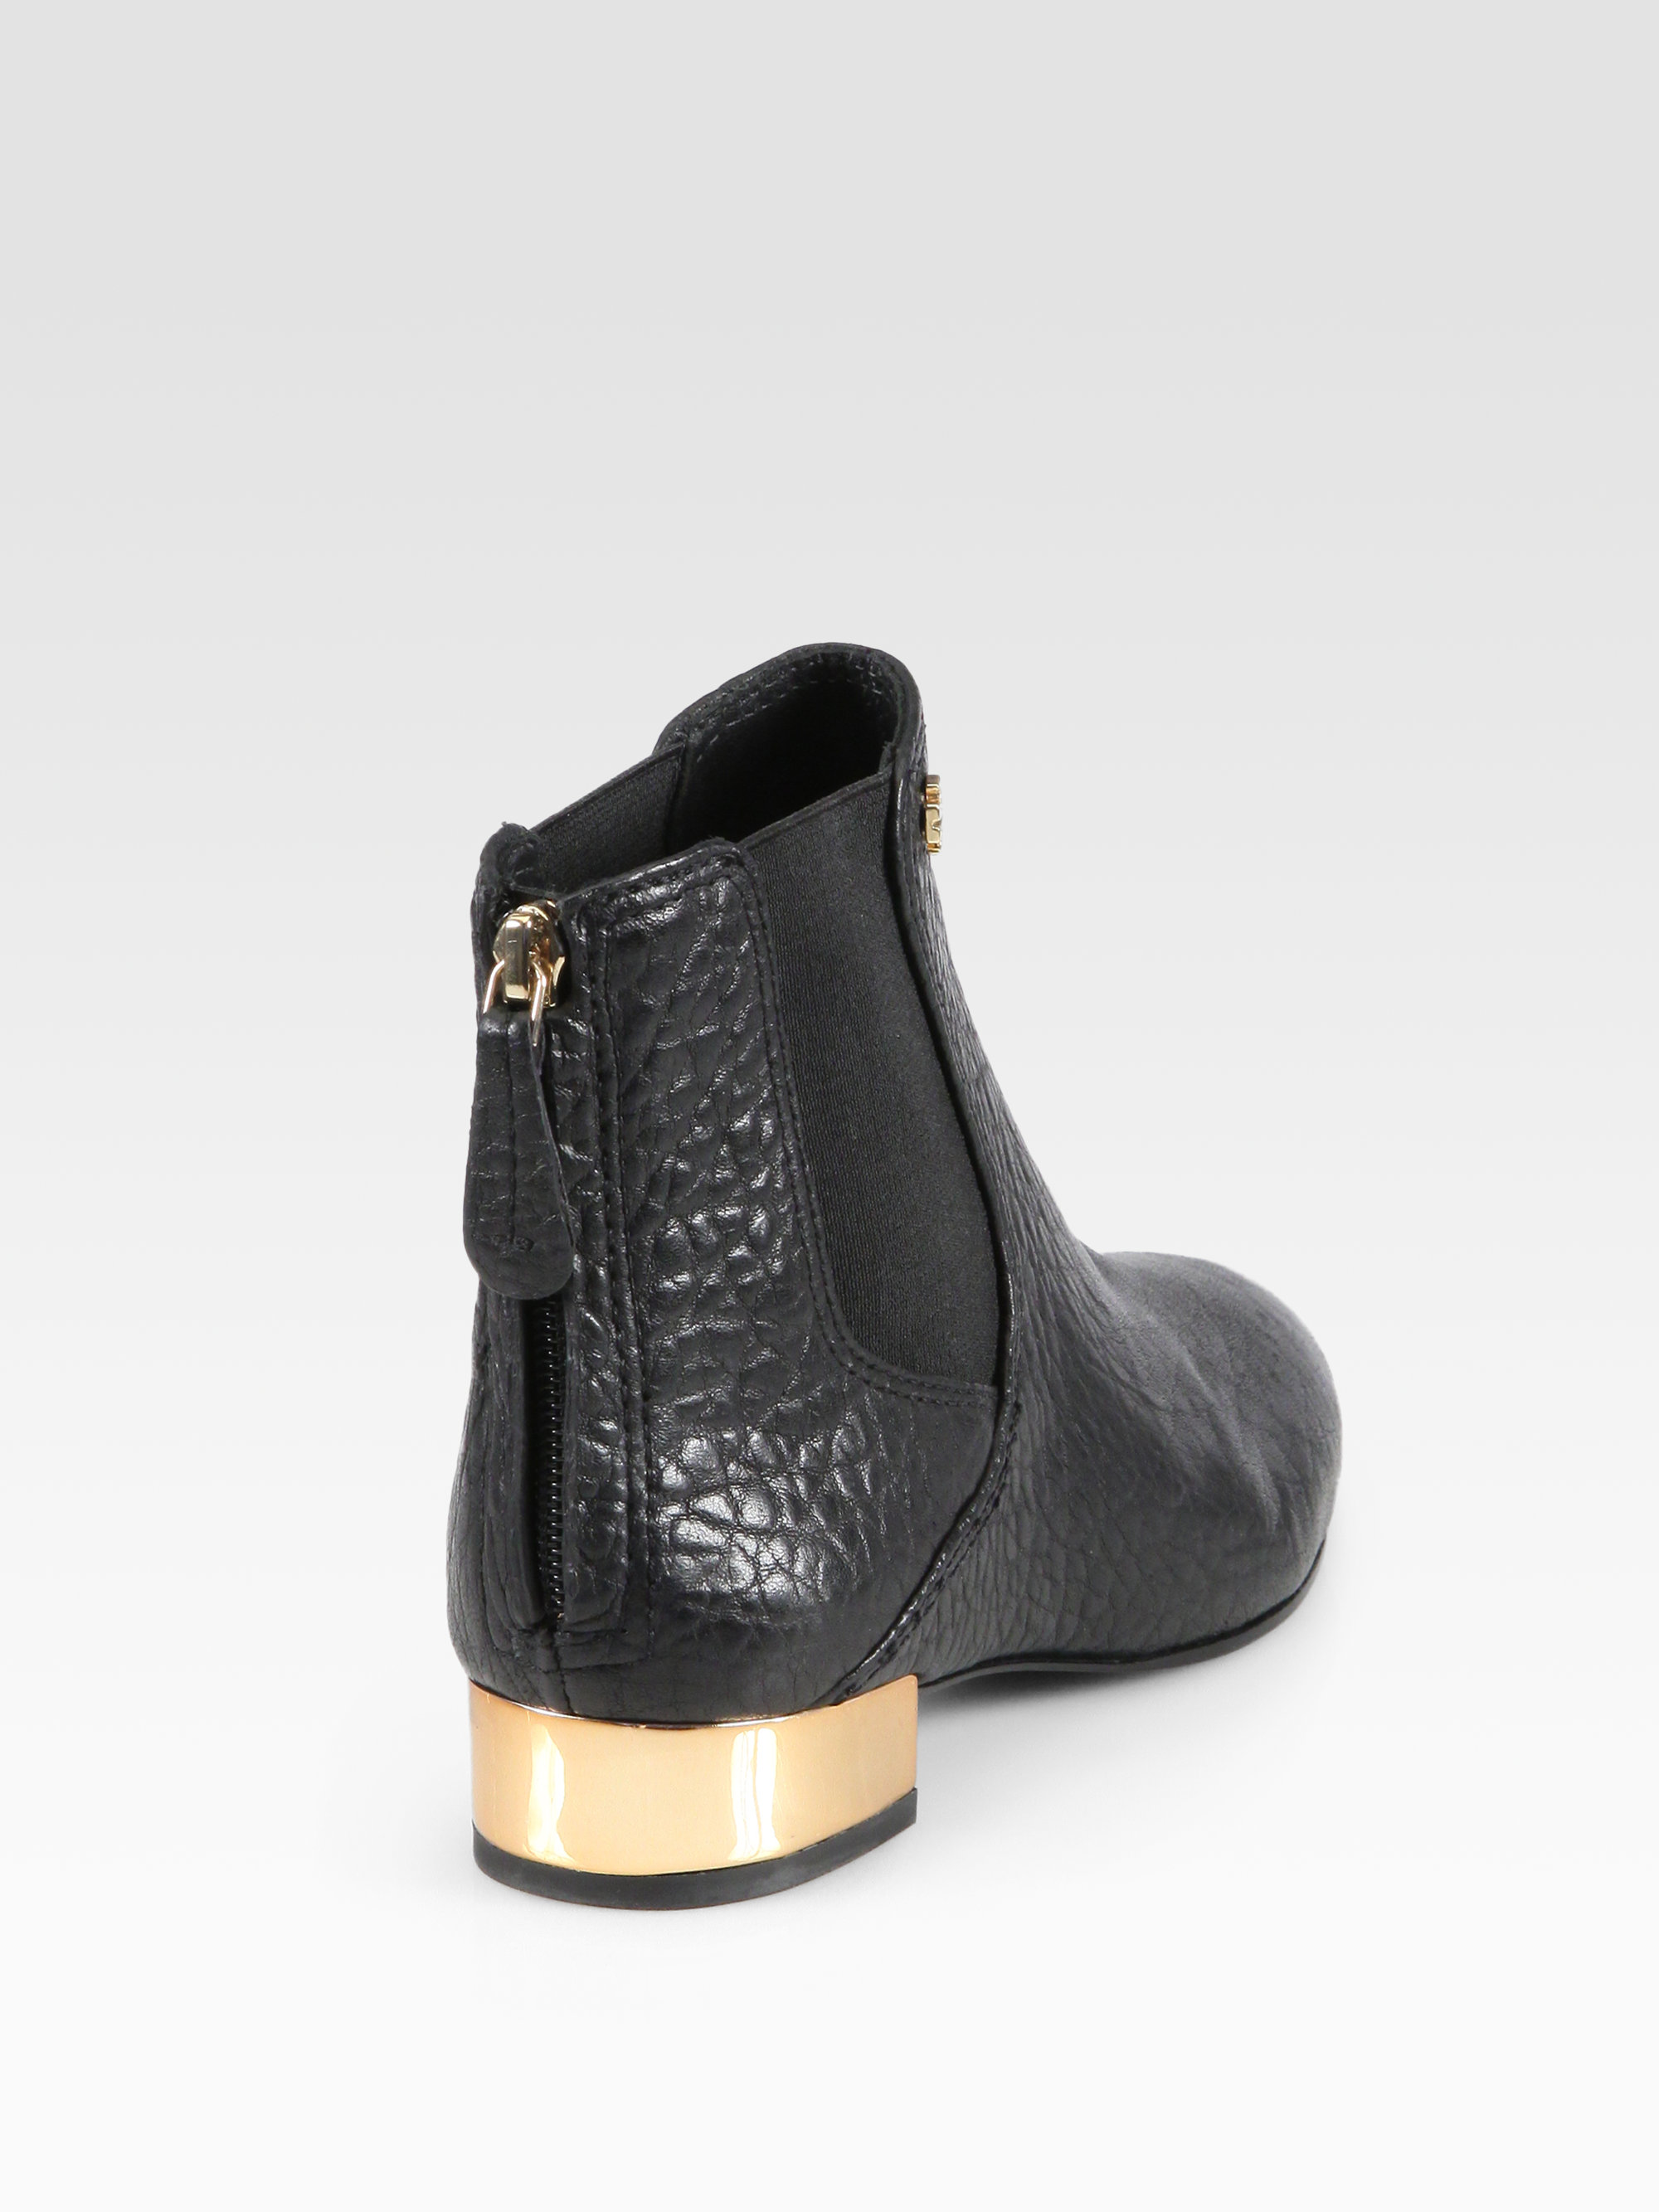 Lyst Tory Burch Adaire Pebbled Leather Ankle Boots In Black